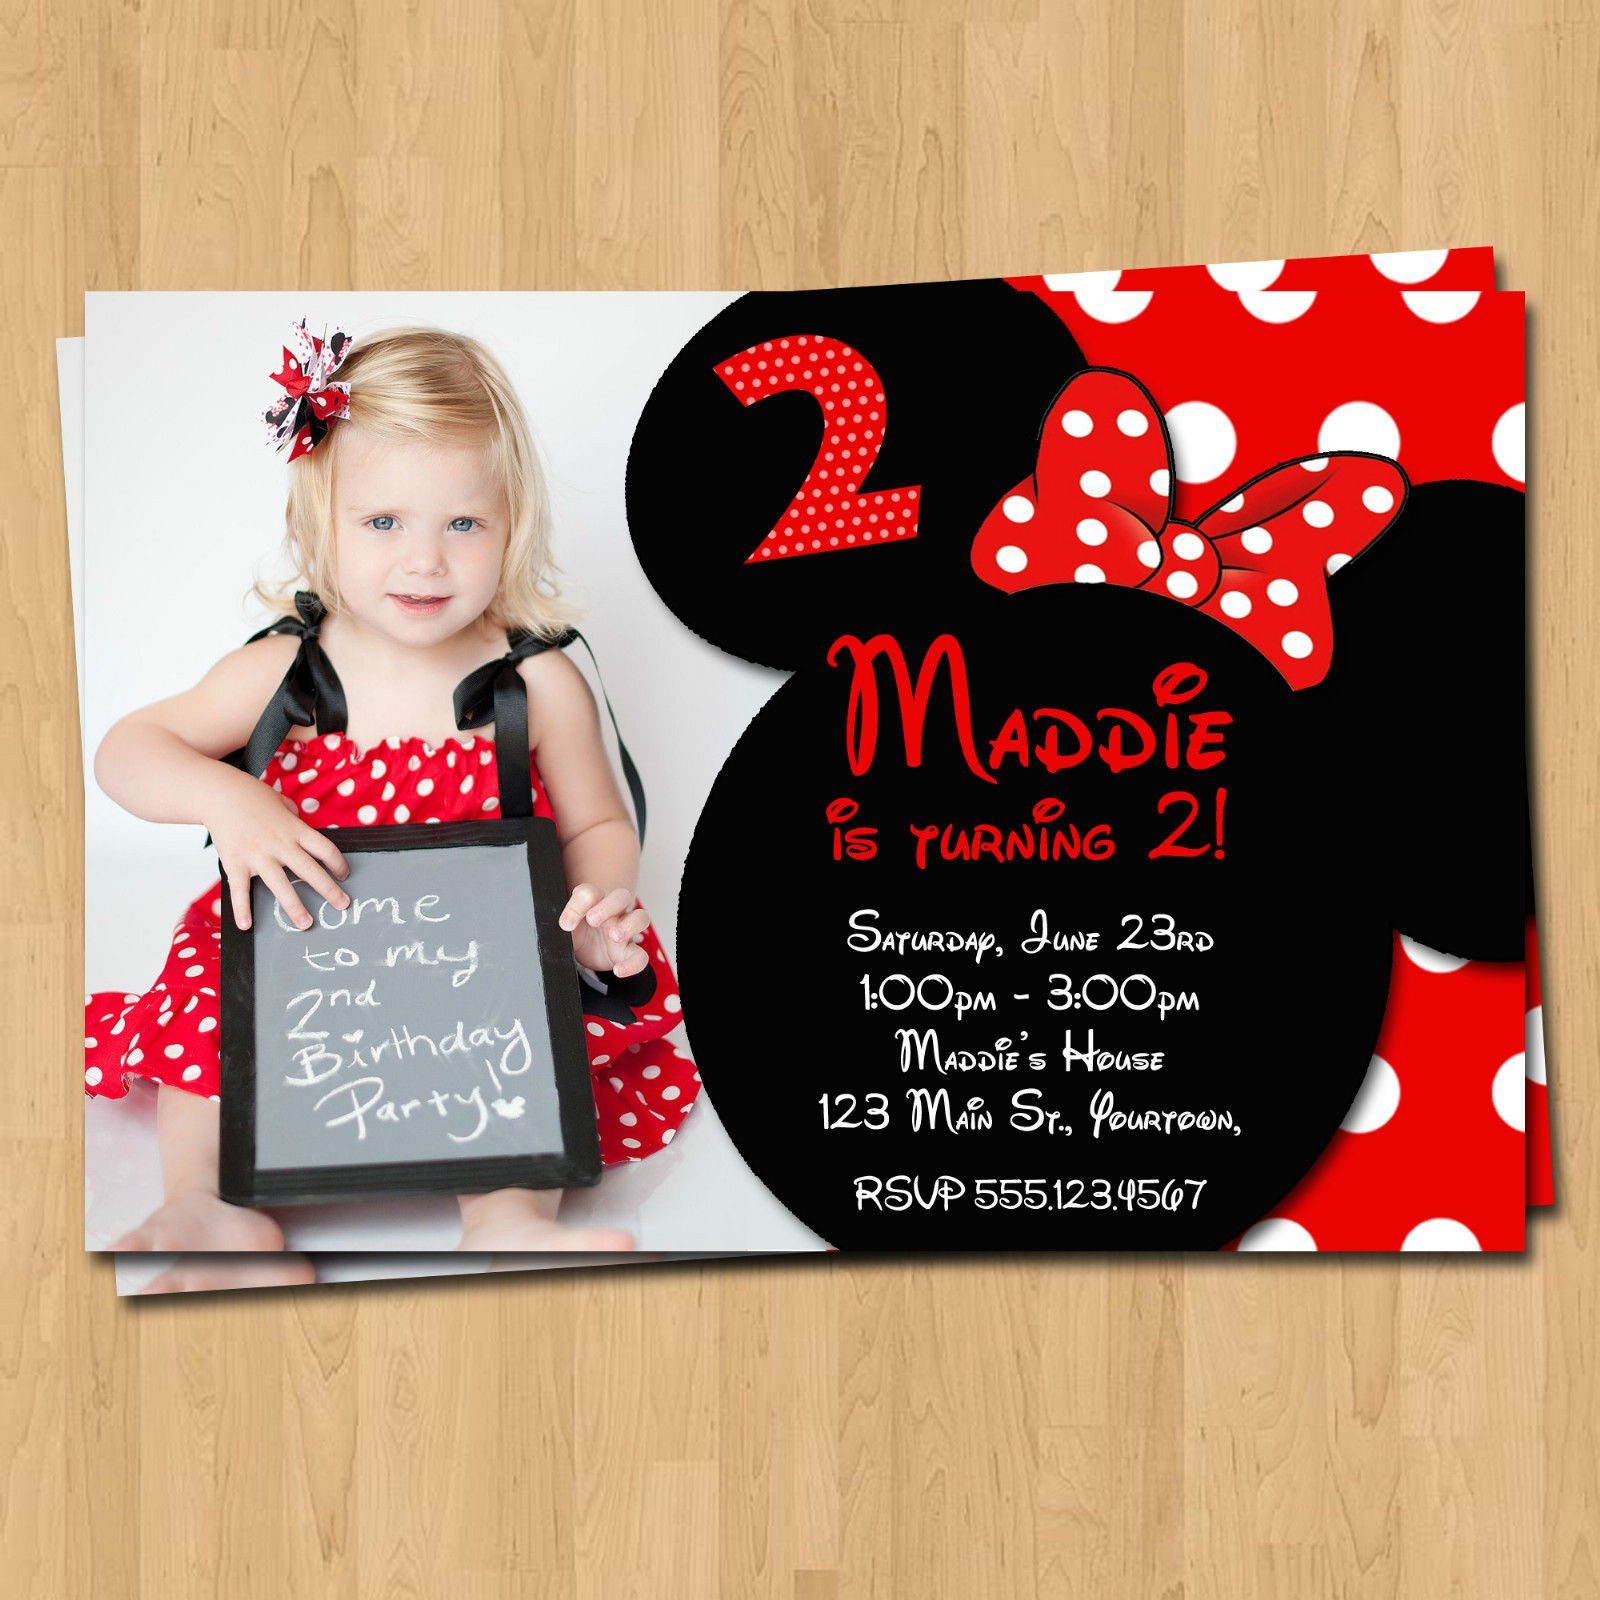 Free Printable Minnie Mouse Birthday Party Invitations | FREE ...